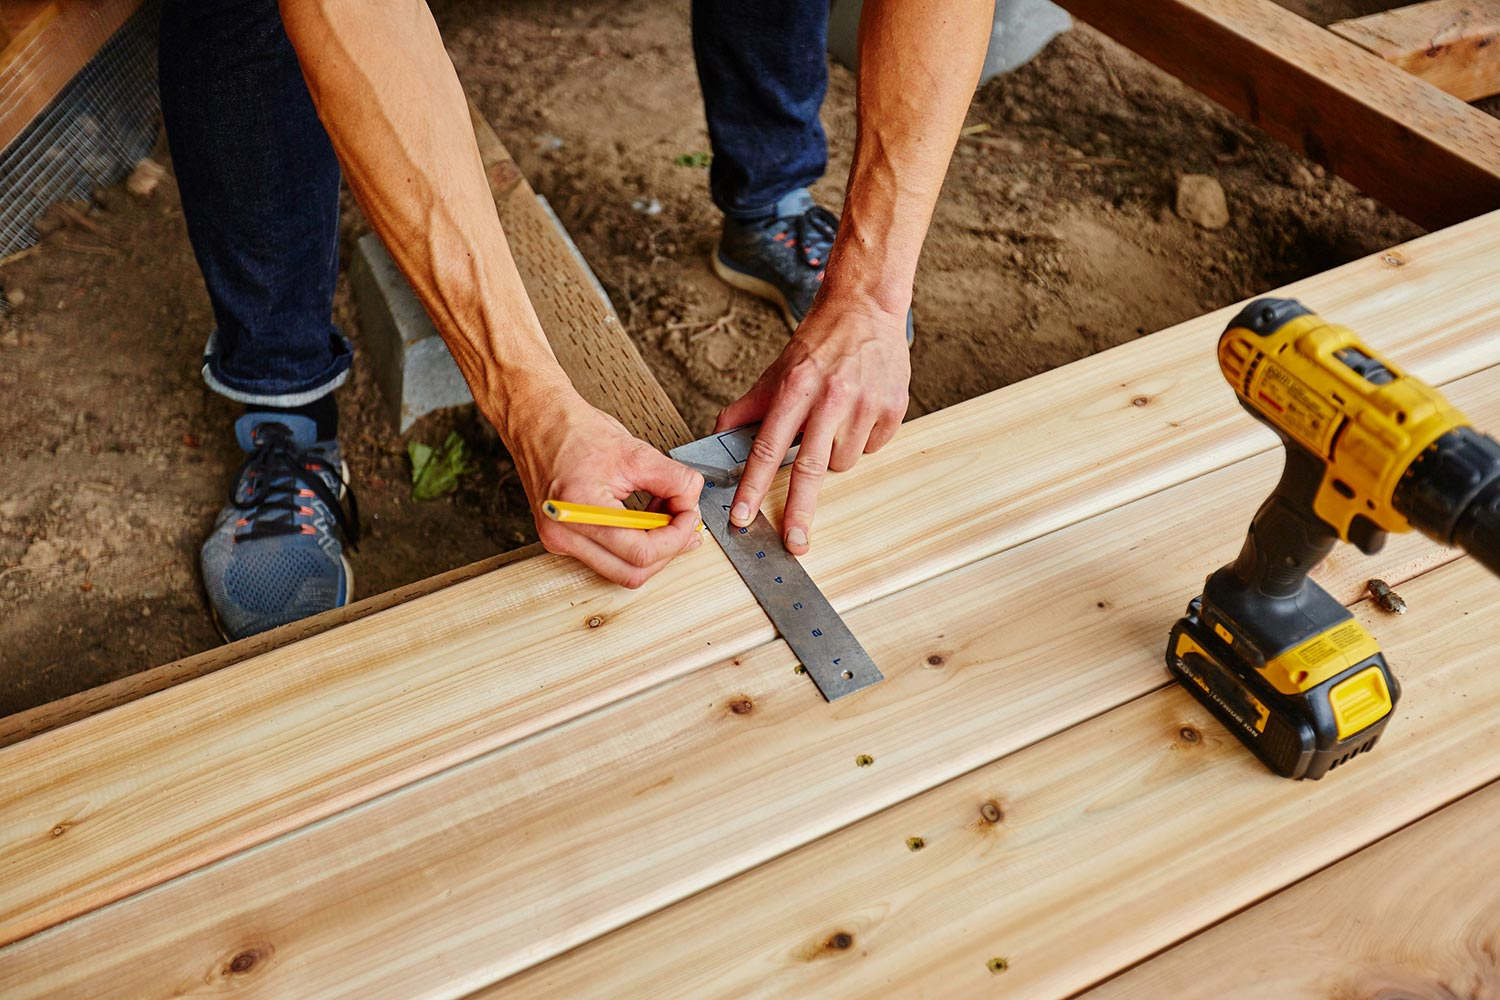 Man measuring before drilling while building a deck during the spring